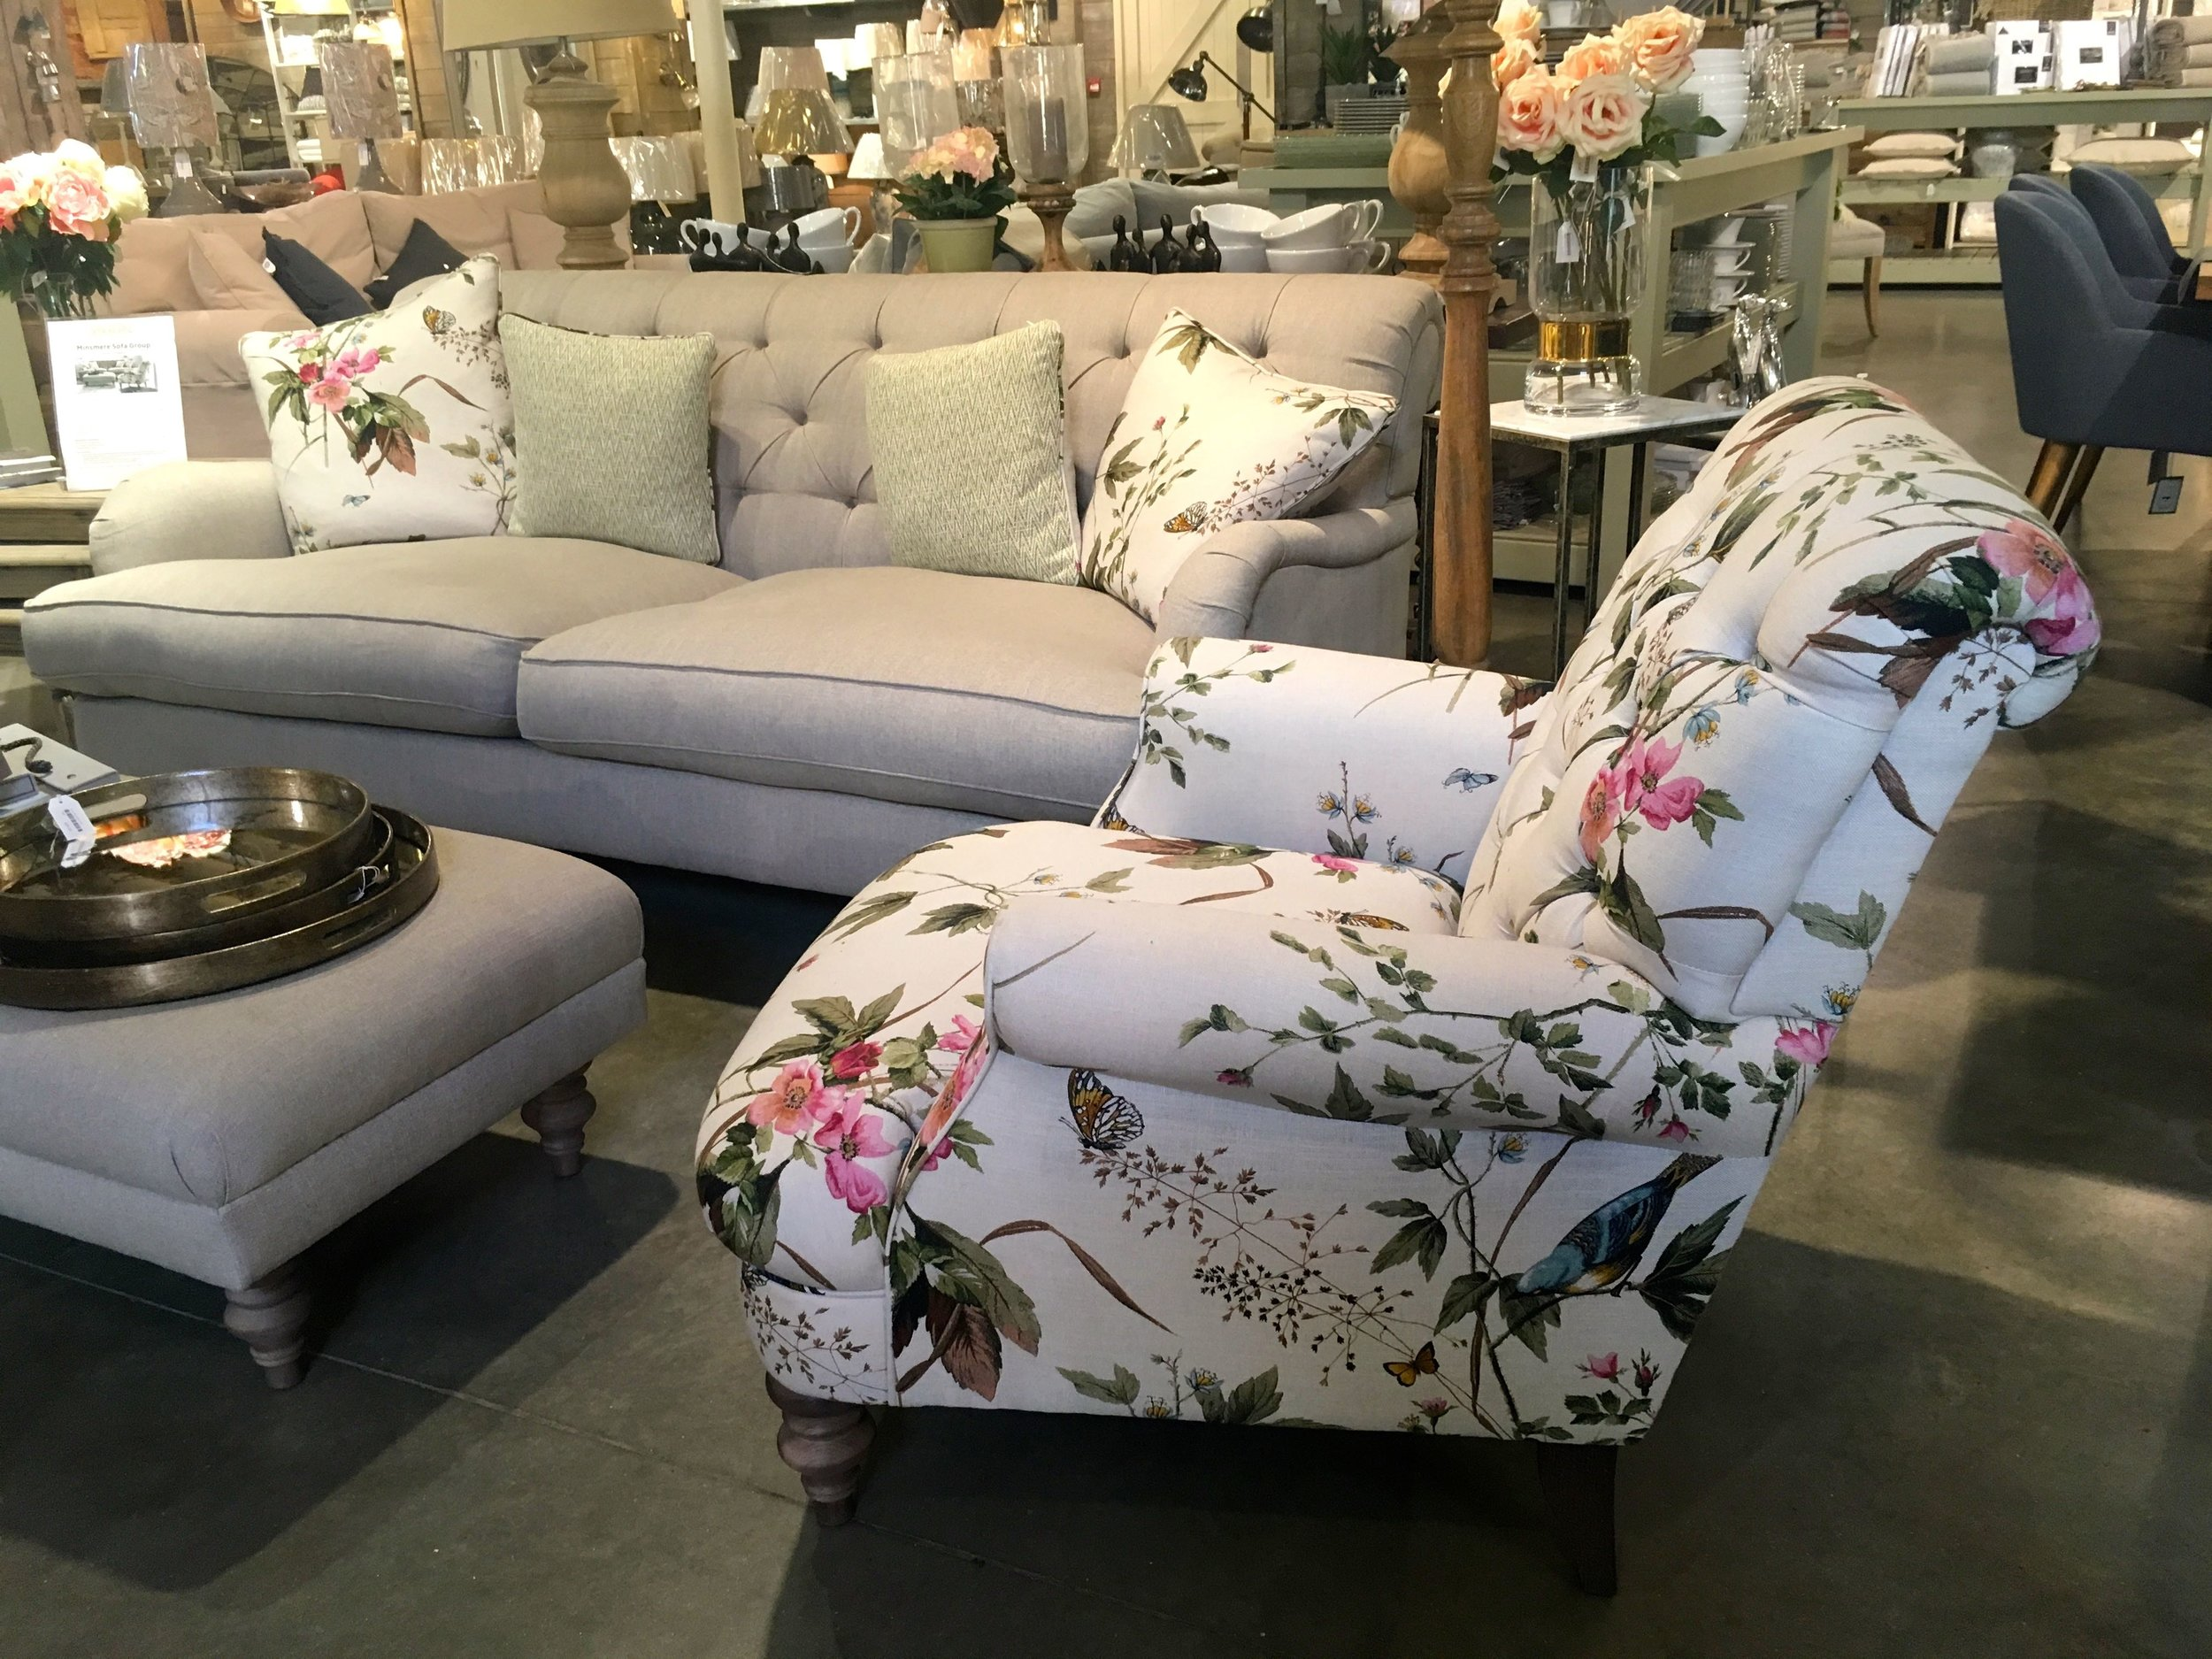 A rose patterned armchair in the Homes & Gardens shop at Snape Malting Suffolk